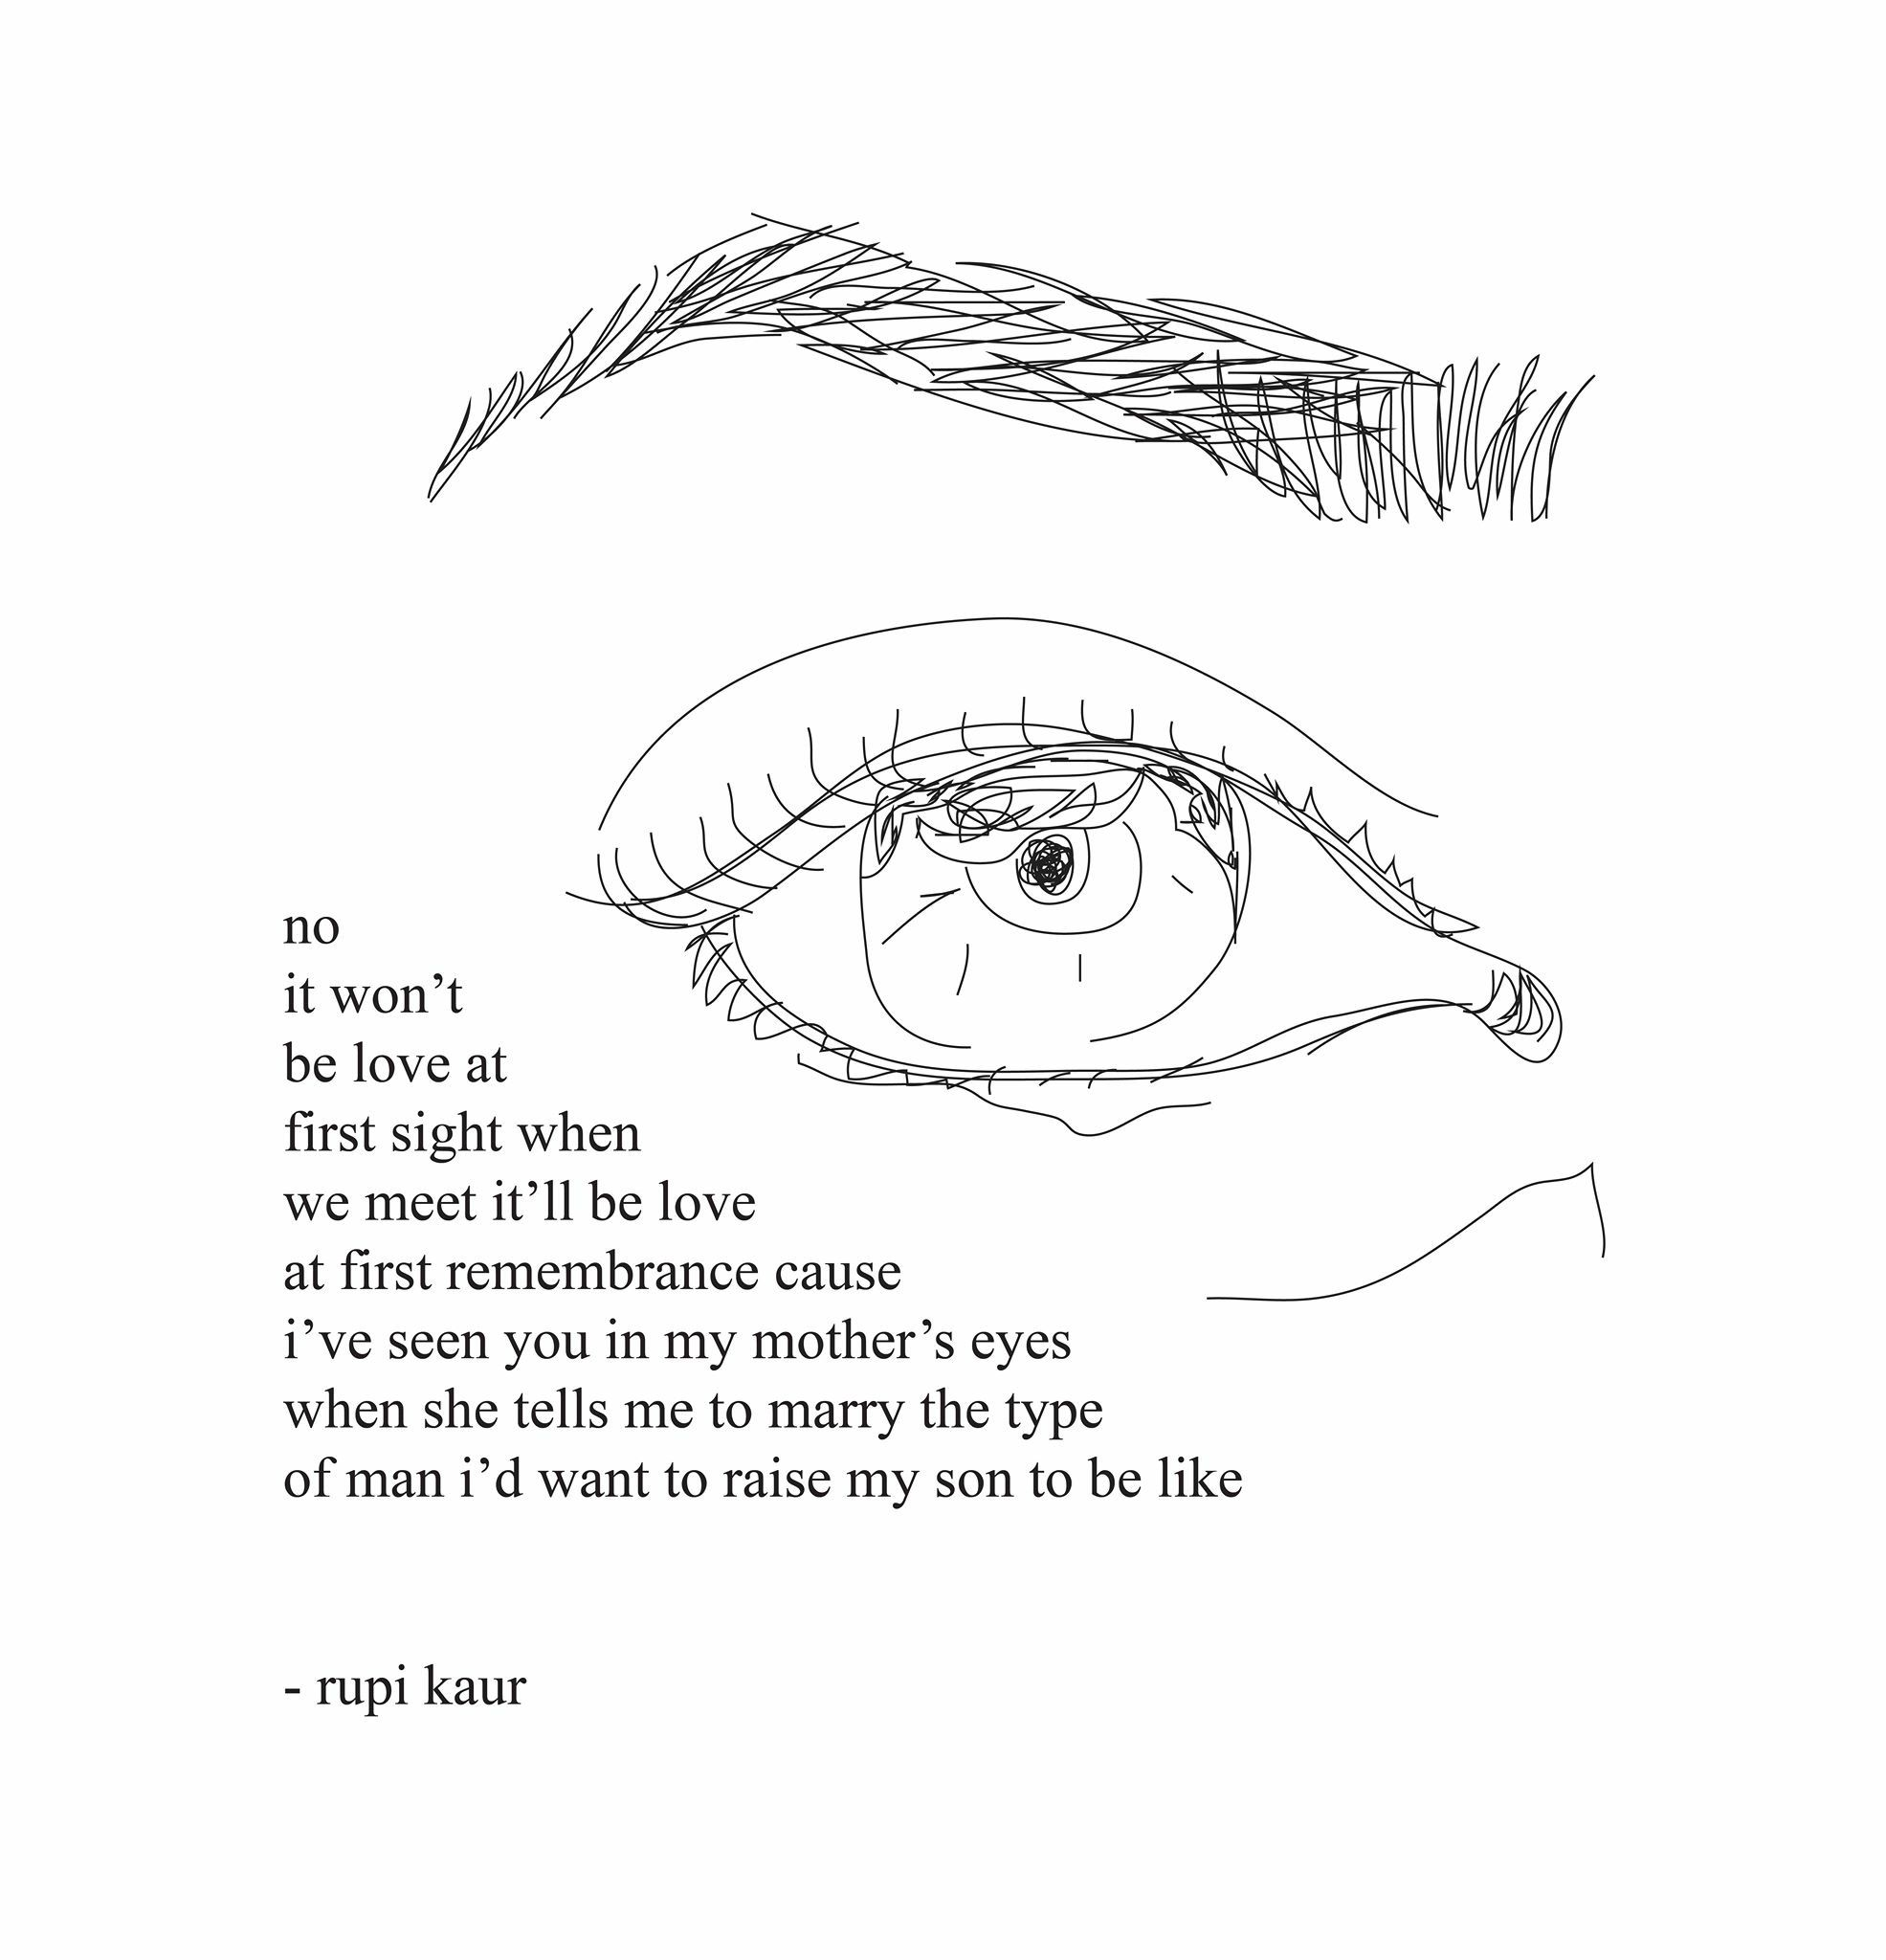 Rupi Kaur Quotes Delectable Image Result For Rupi Kaur Quotes  Loveee  Pinterest  Rupi Kaur